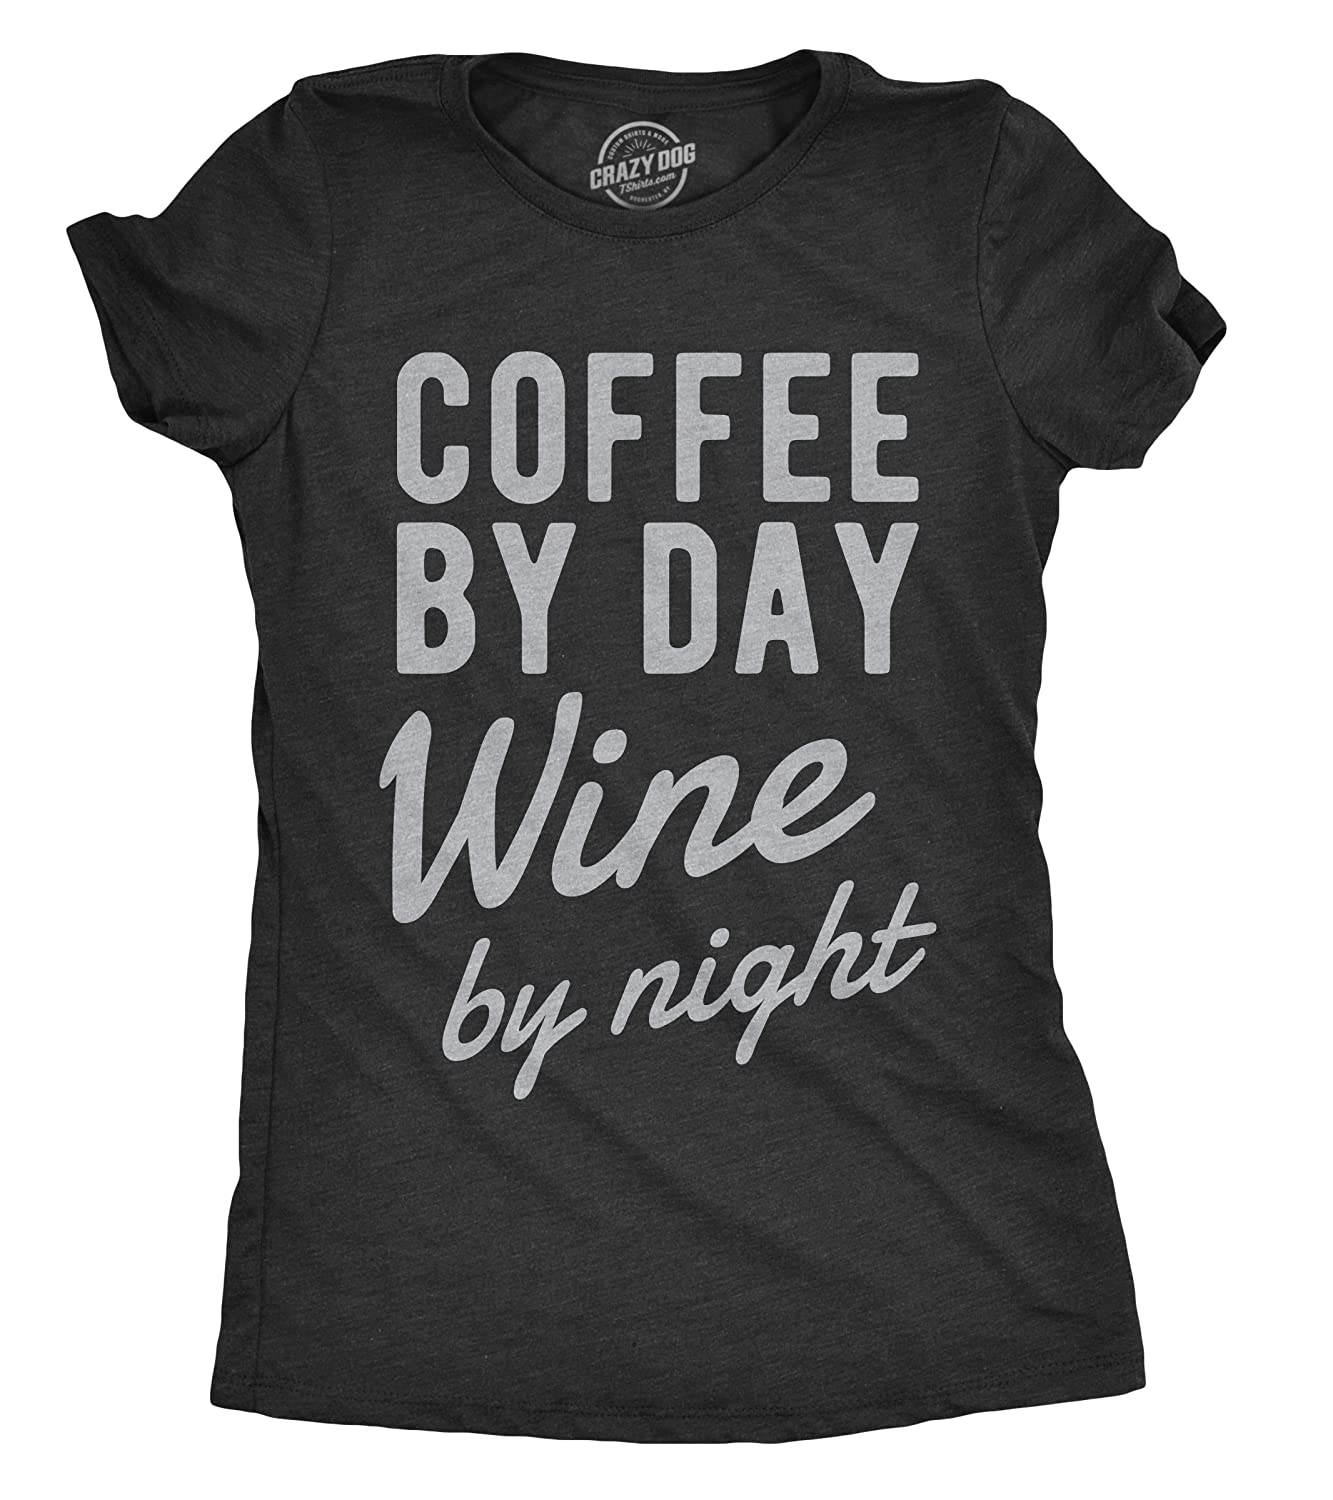 Womens Coffee By Day Wine By Night Tshirt Funny Drinking Tee For Ladies Crazy Dog Tshirts